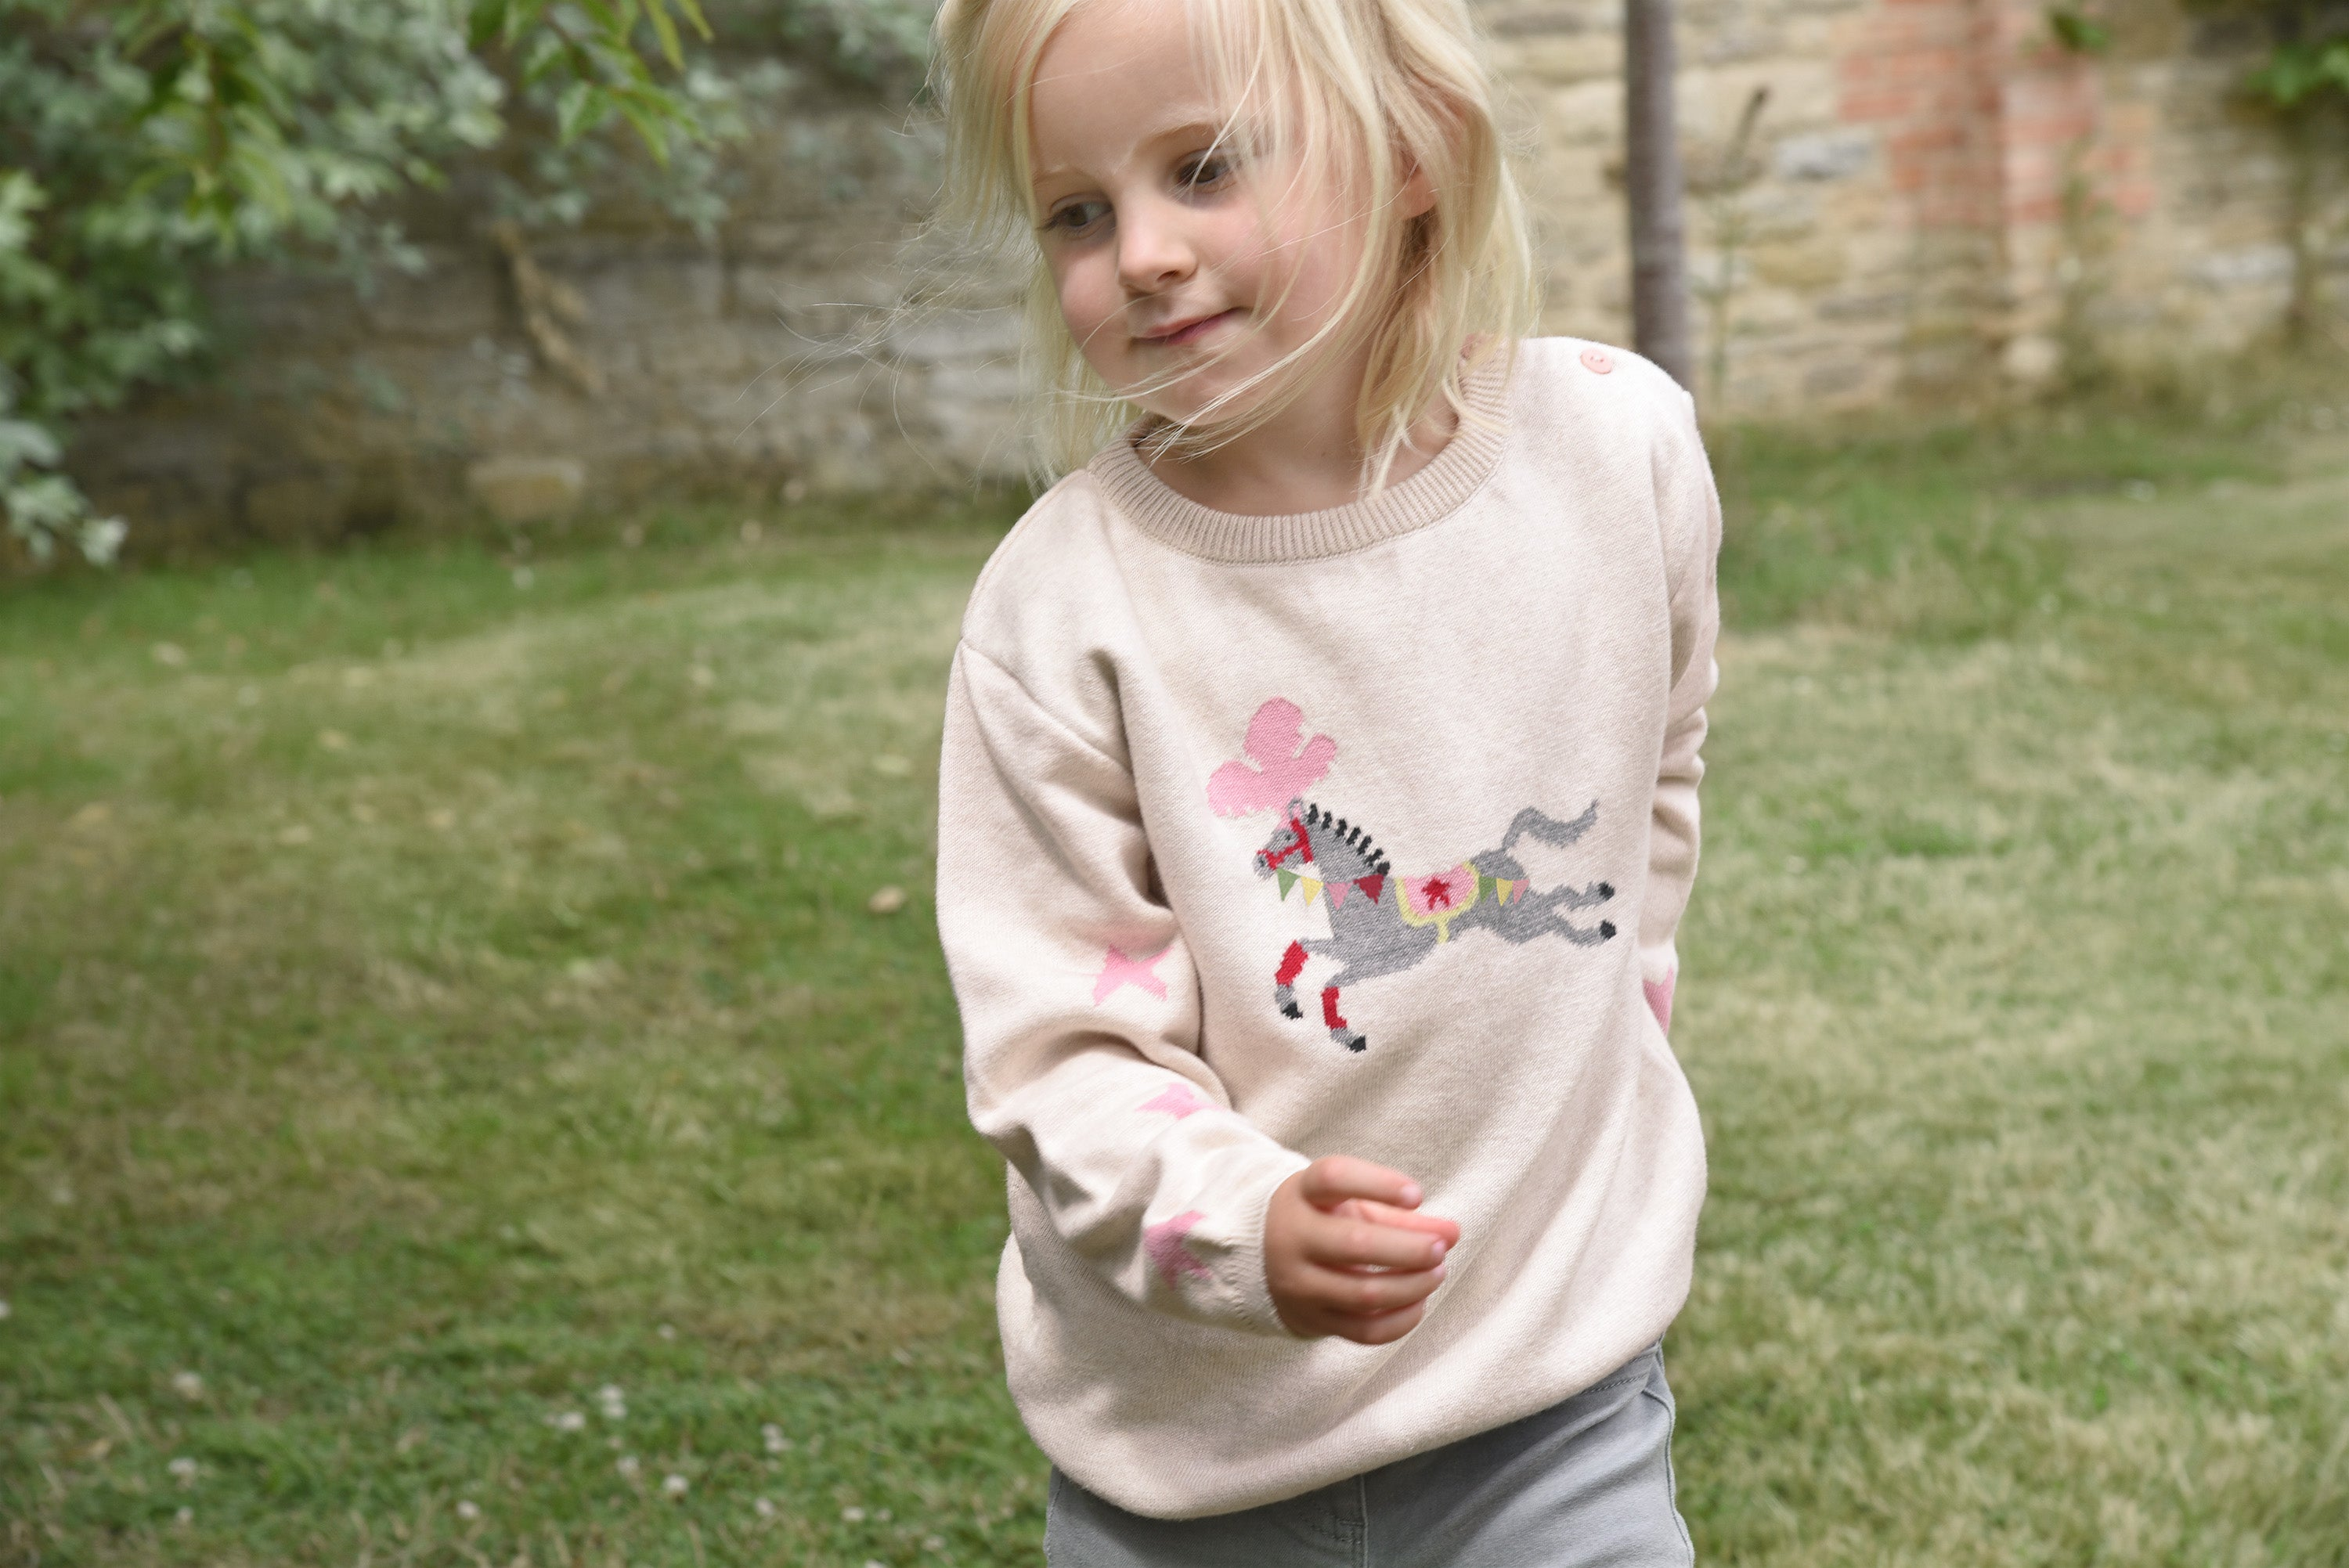 Fairground at home with Sophie Allport - Knitwear Jumper in a sweet pink colour